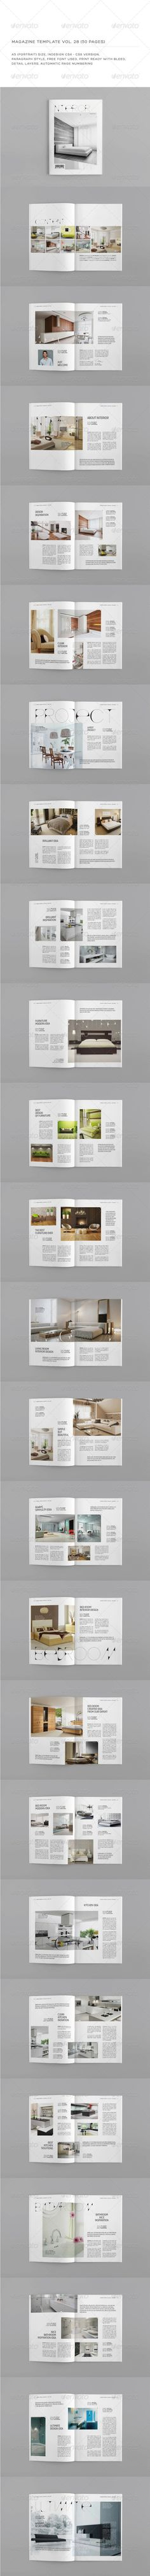 Indesign template vol 28 You can download this template here : http://graphicriver.net/item/a5-portrait-50-pages-mgz-vol-28/7410051?WT.oss_phrase=&WT.oss_rank=15&WT.z_author=Shafura&WT.ac=search_thumb